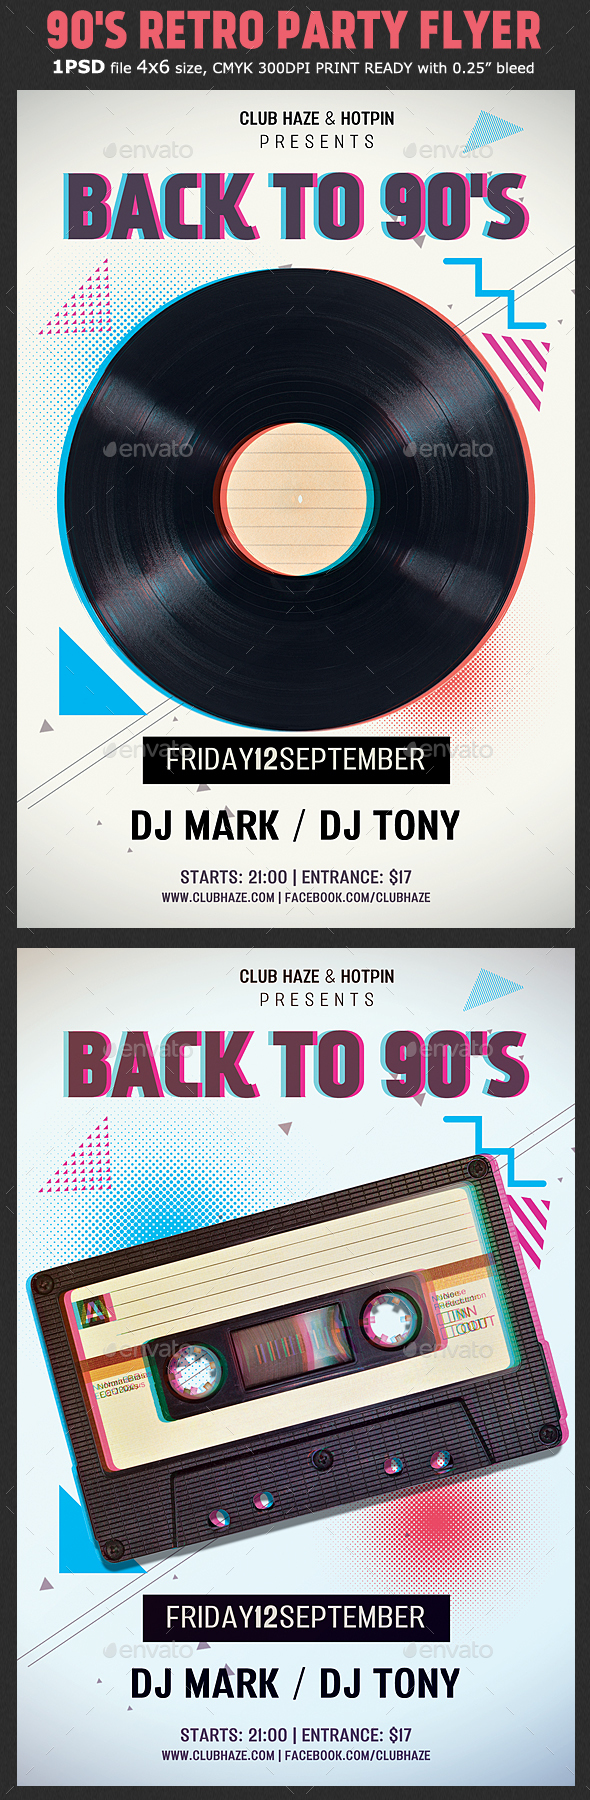 90s Retro Party Flyer Template - Clubs & Parties Events